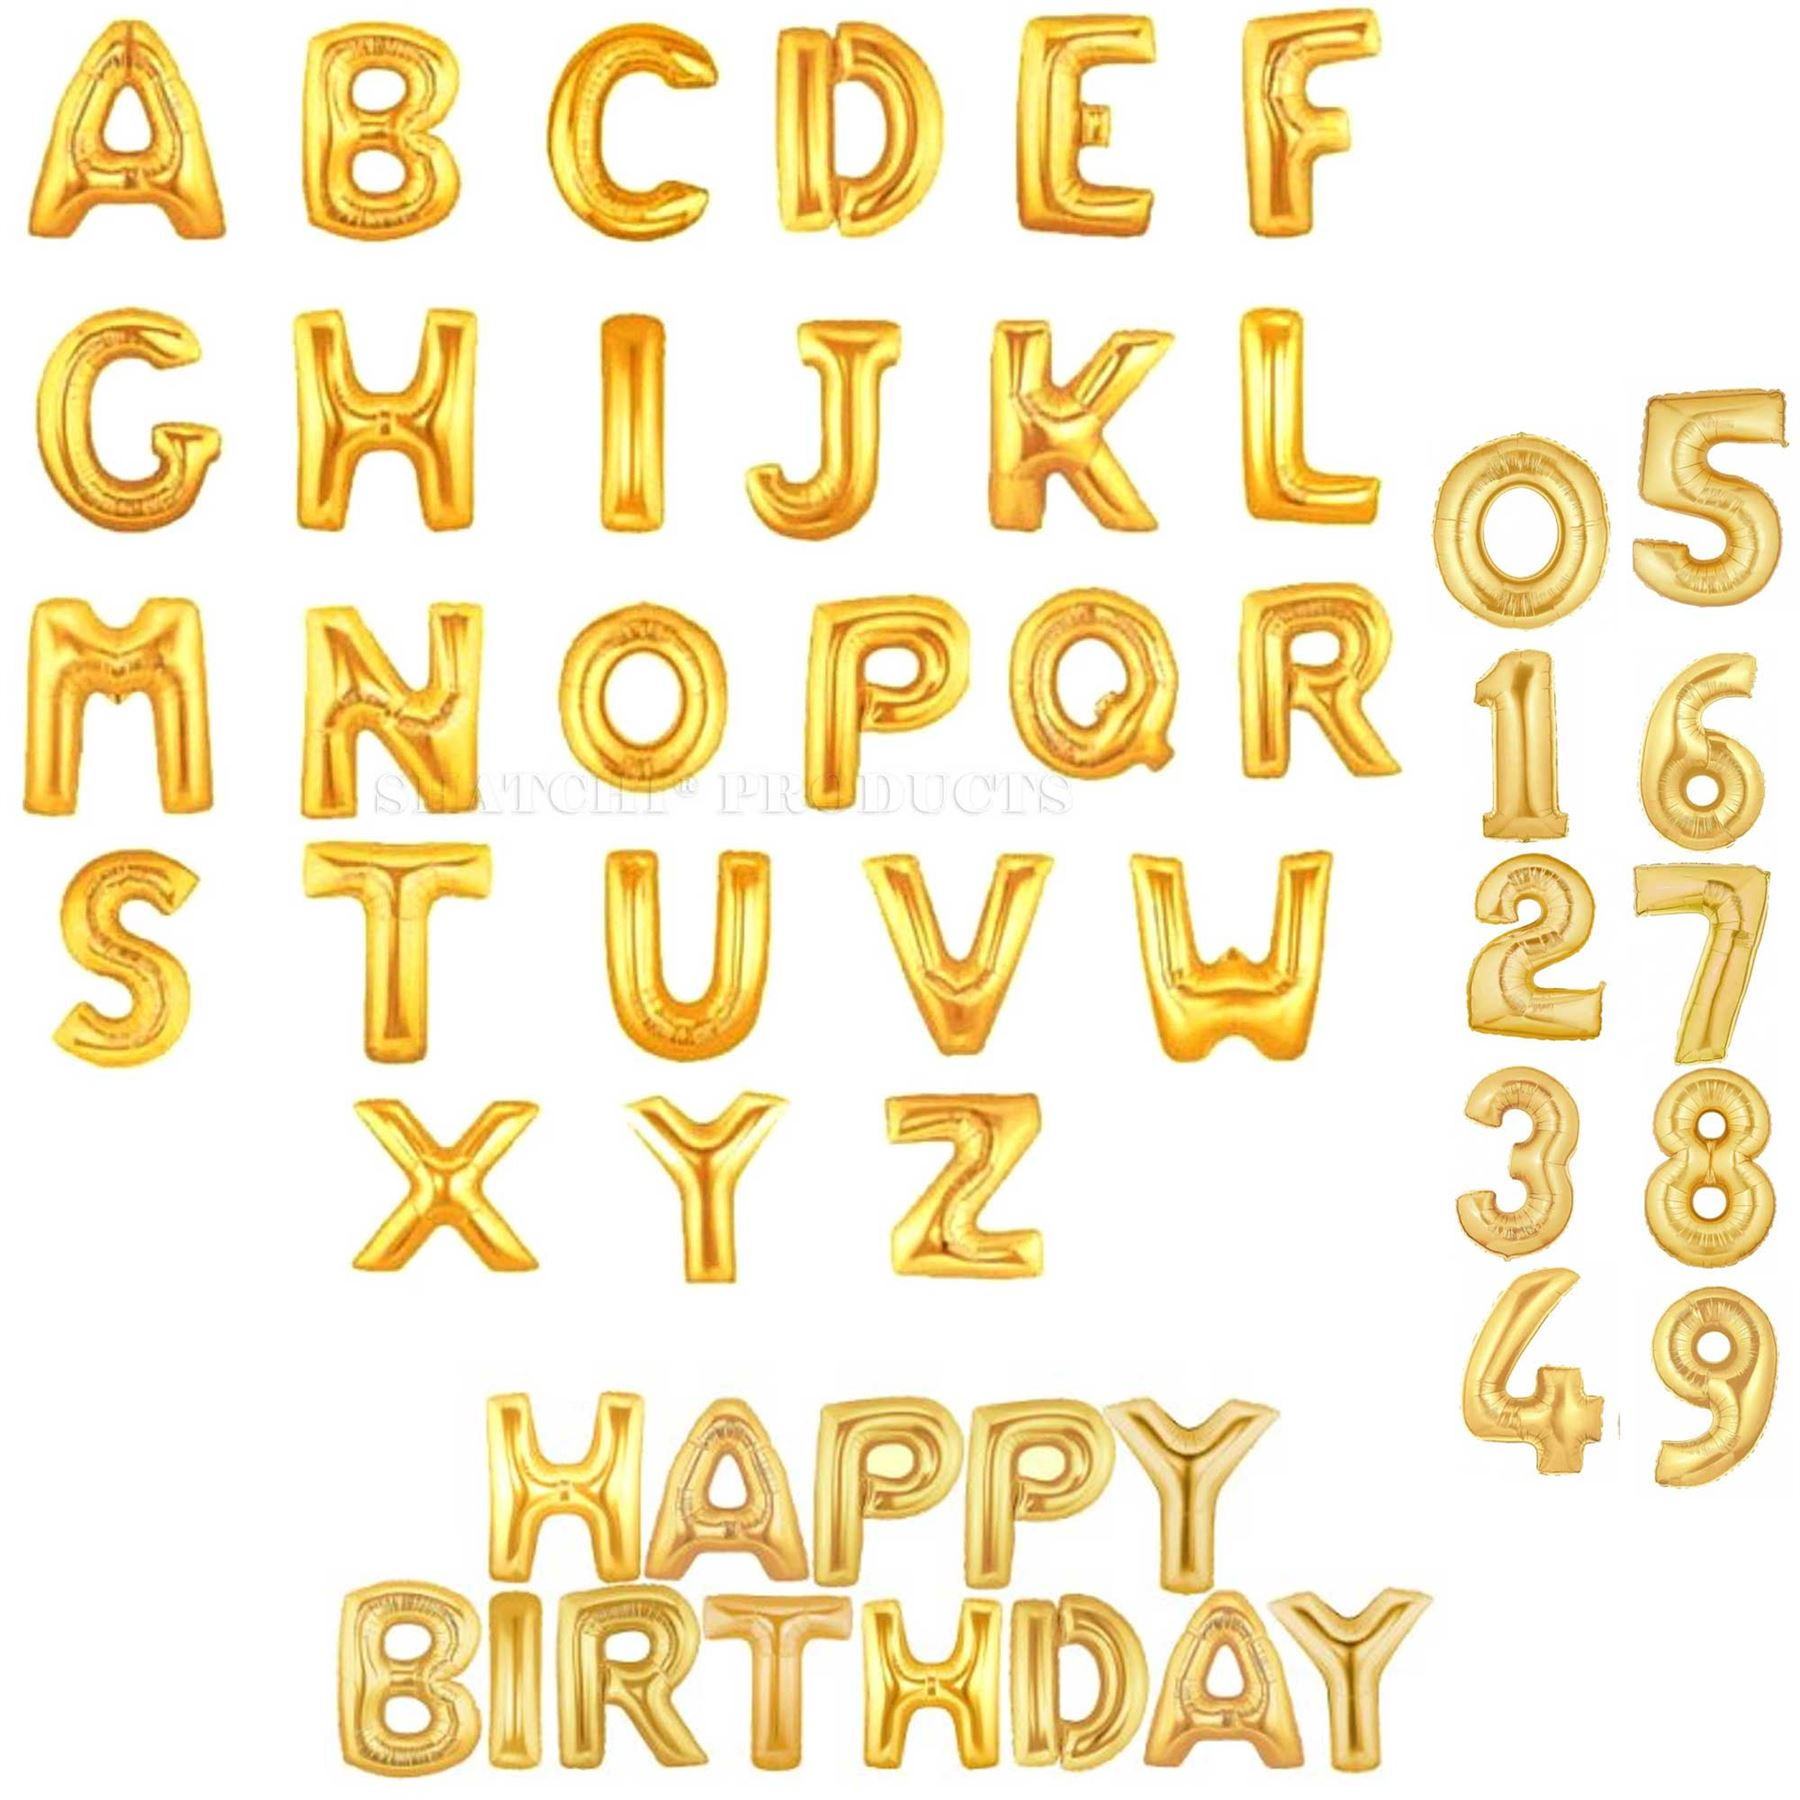 751cfd591545d Foil Balloons Alphabet Letter Birthday Wedding Banner Bunting Party  Decorations Gold Number 8